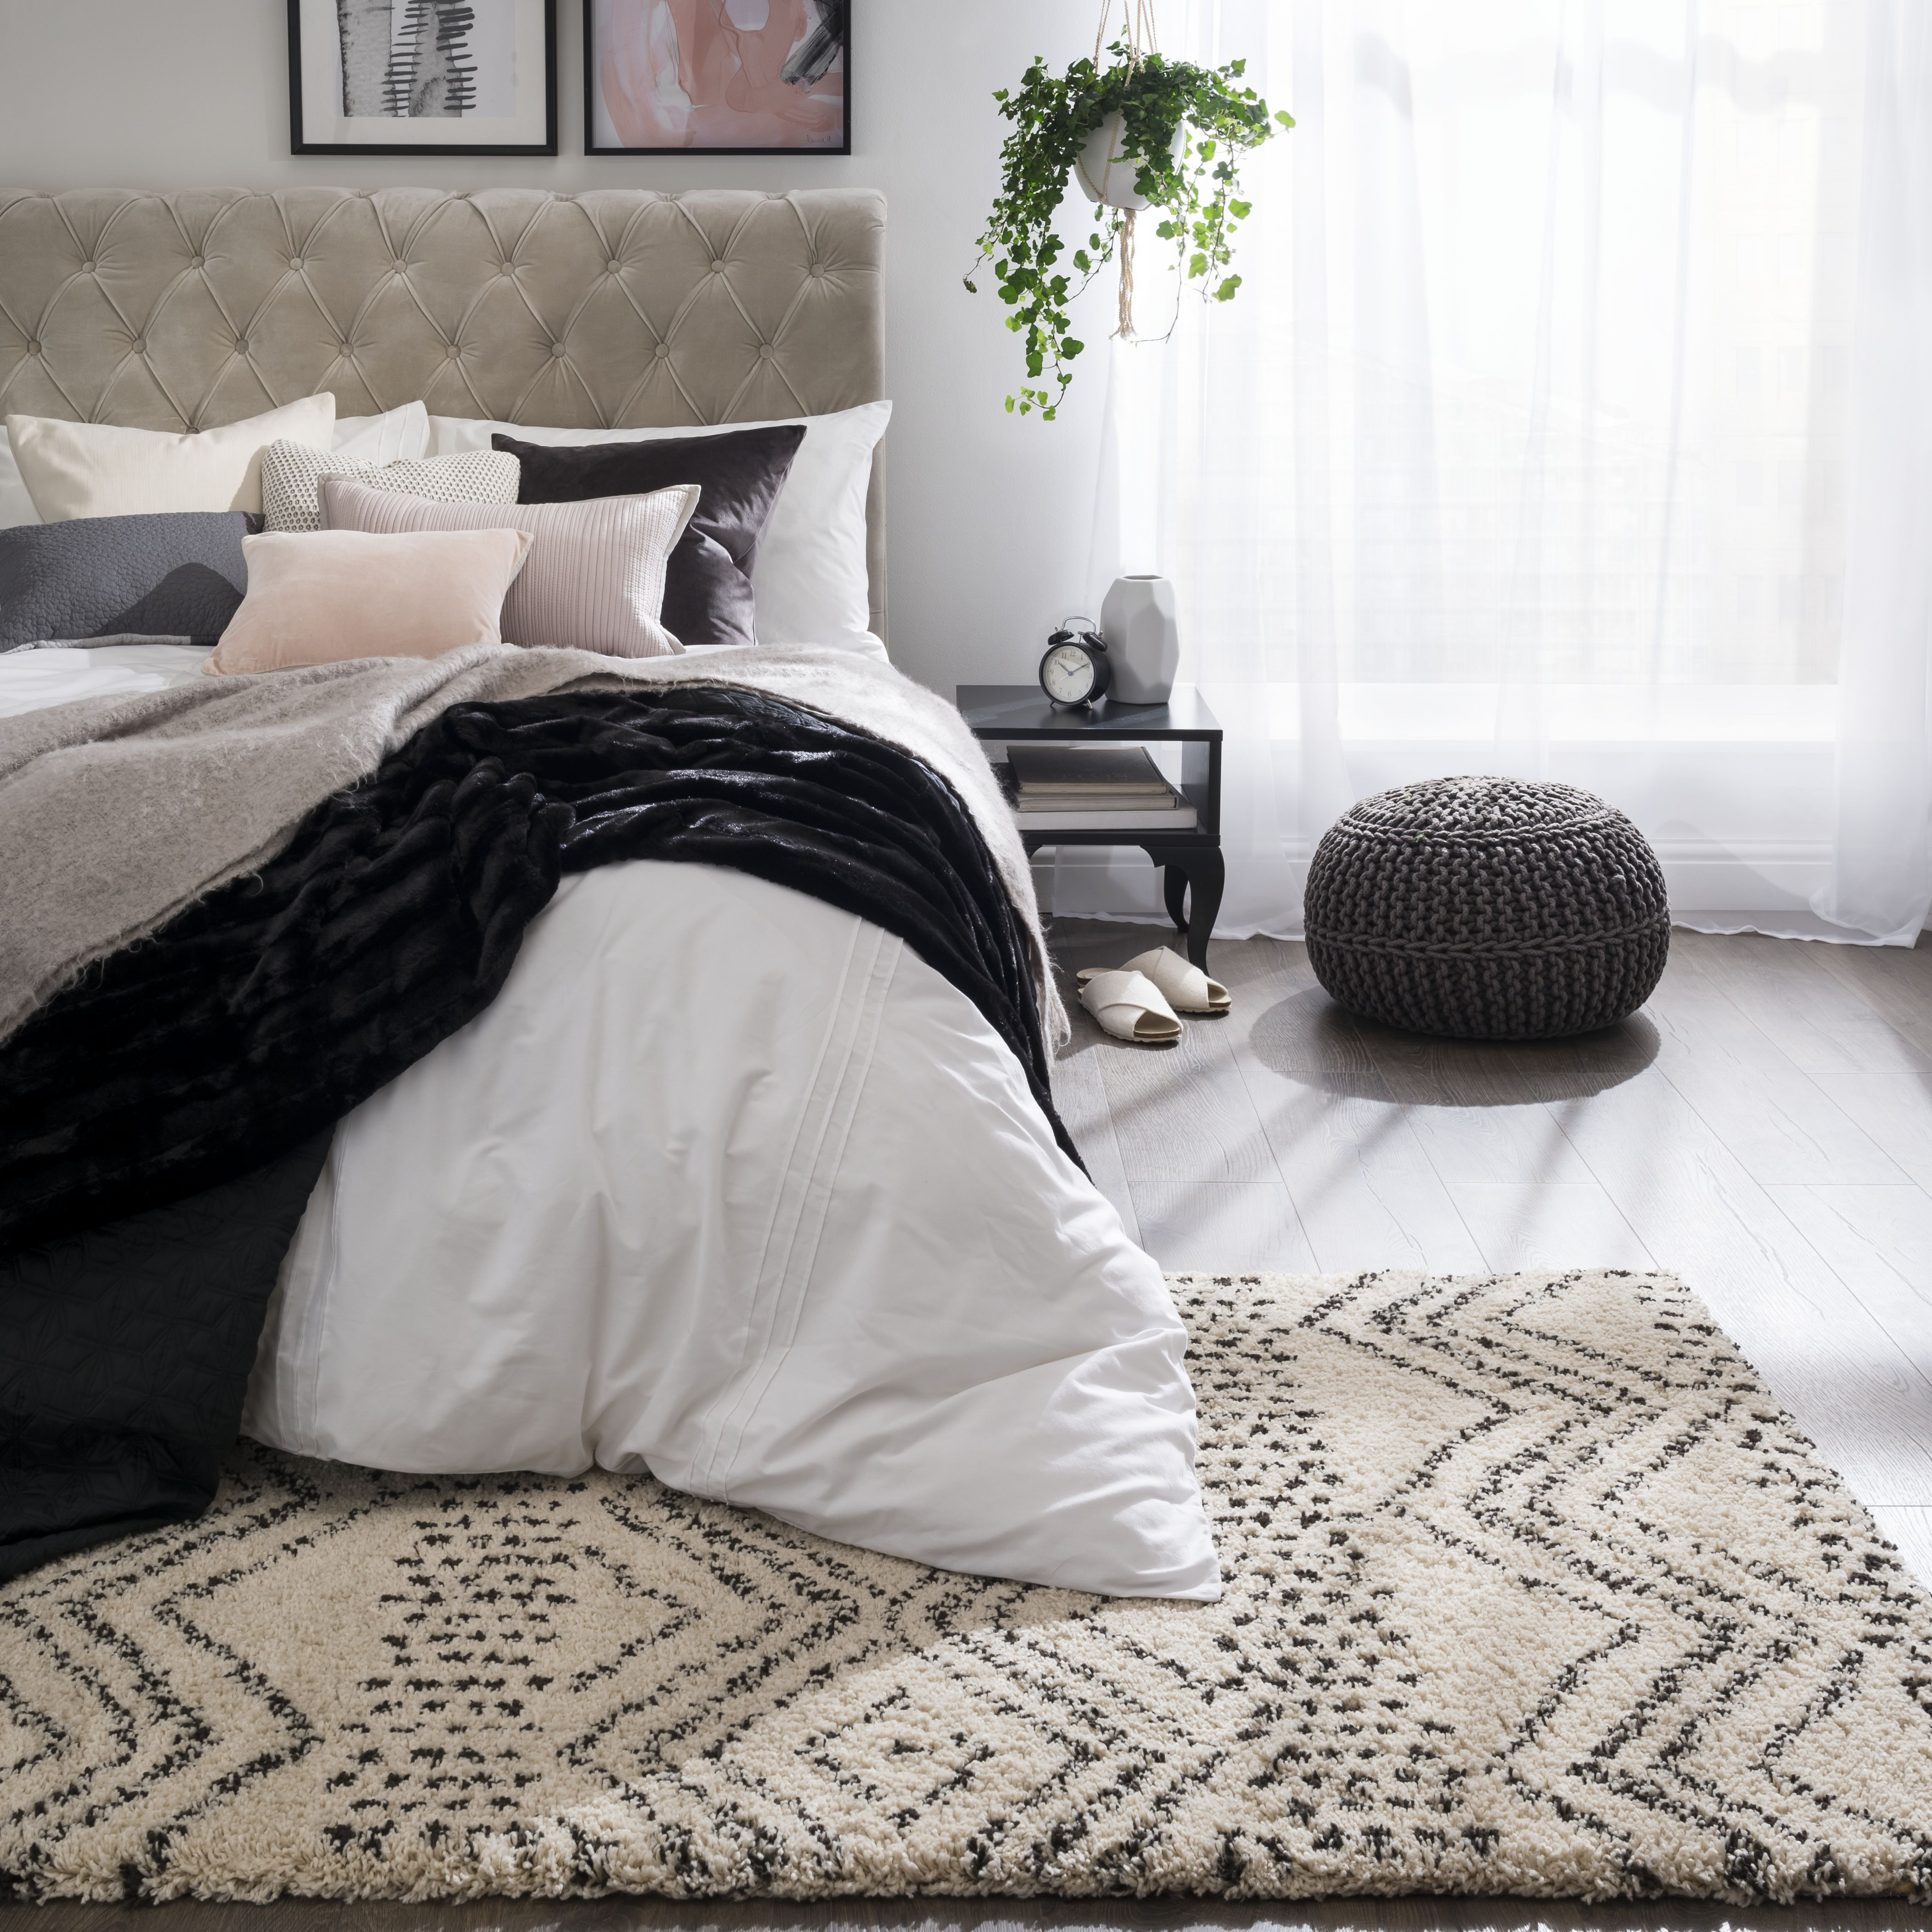 Pin by Carpetright on Our latest rugs Aztec rug, Rugs in